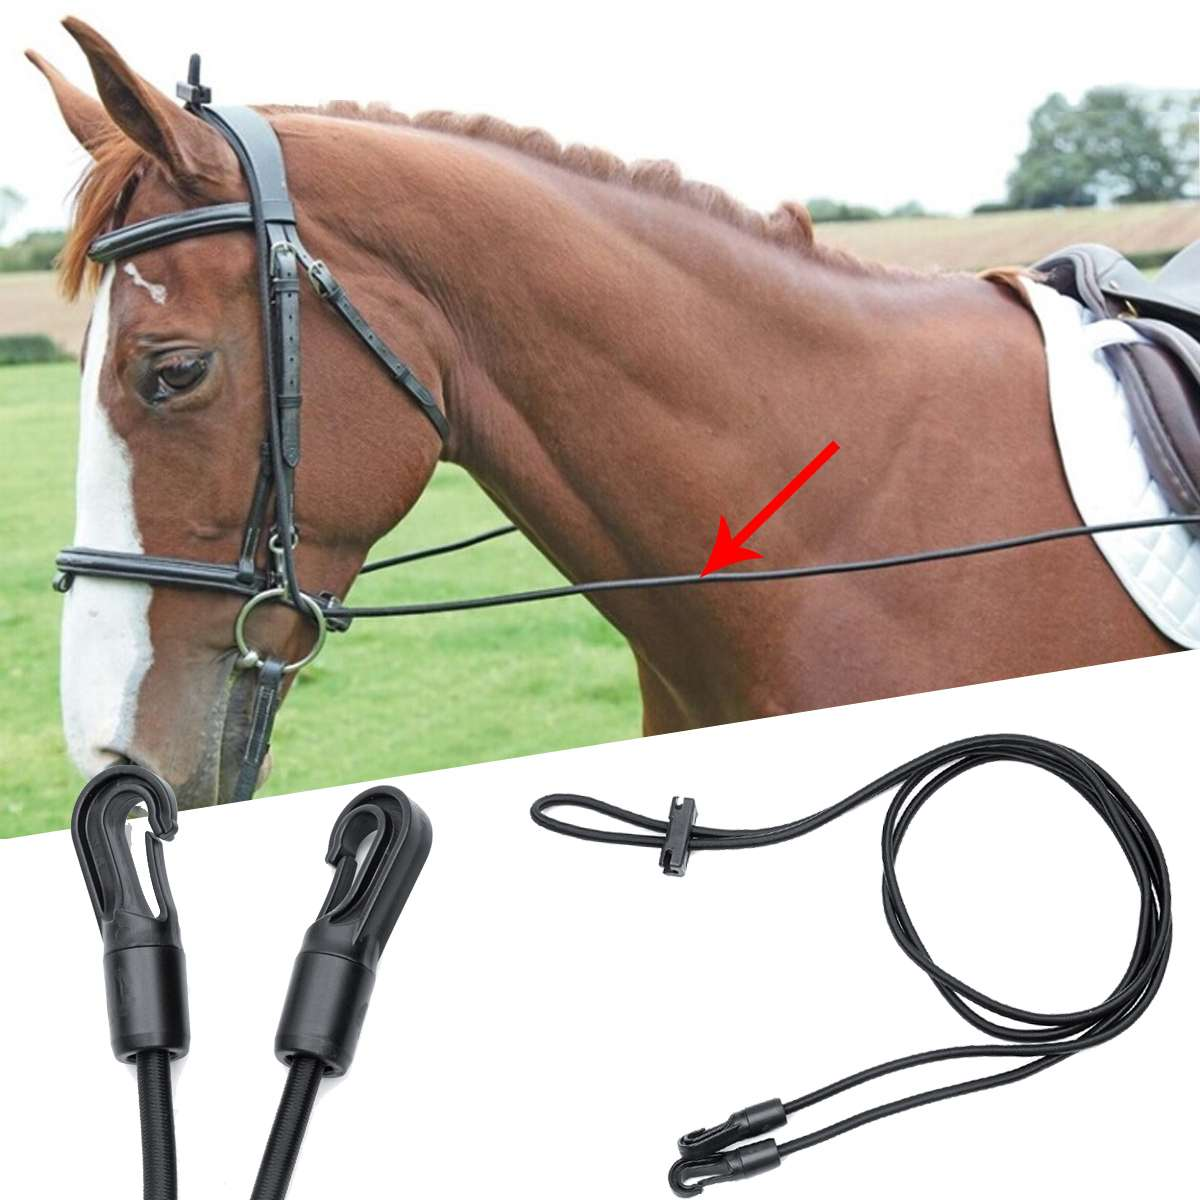 3 Meters Portable Black Horse Reins Bridle Head Collar Rope High Stretch Nylon Halter Horse Control Attachment Riding Equipment